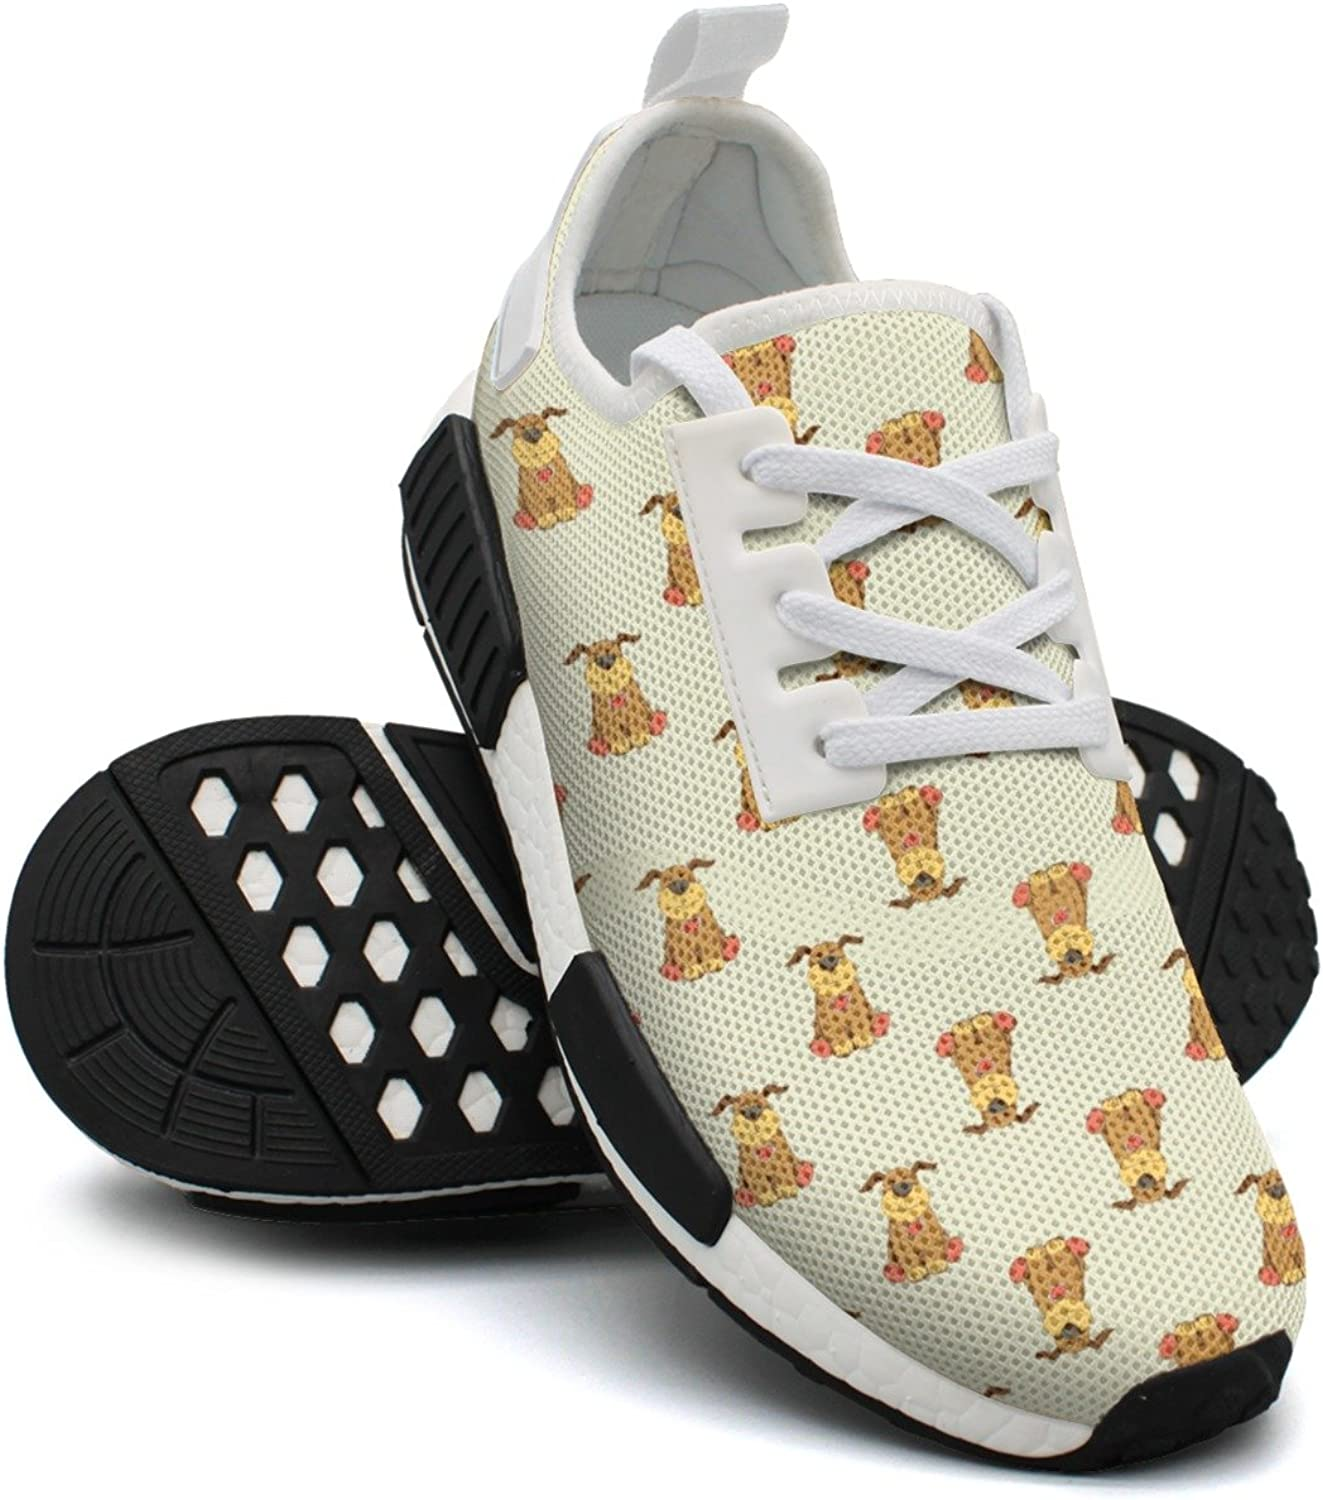 Cartoon Dog Women's Casual Lightweight Basketball Sneakers Gym Outdoor Walking shoes